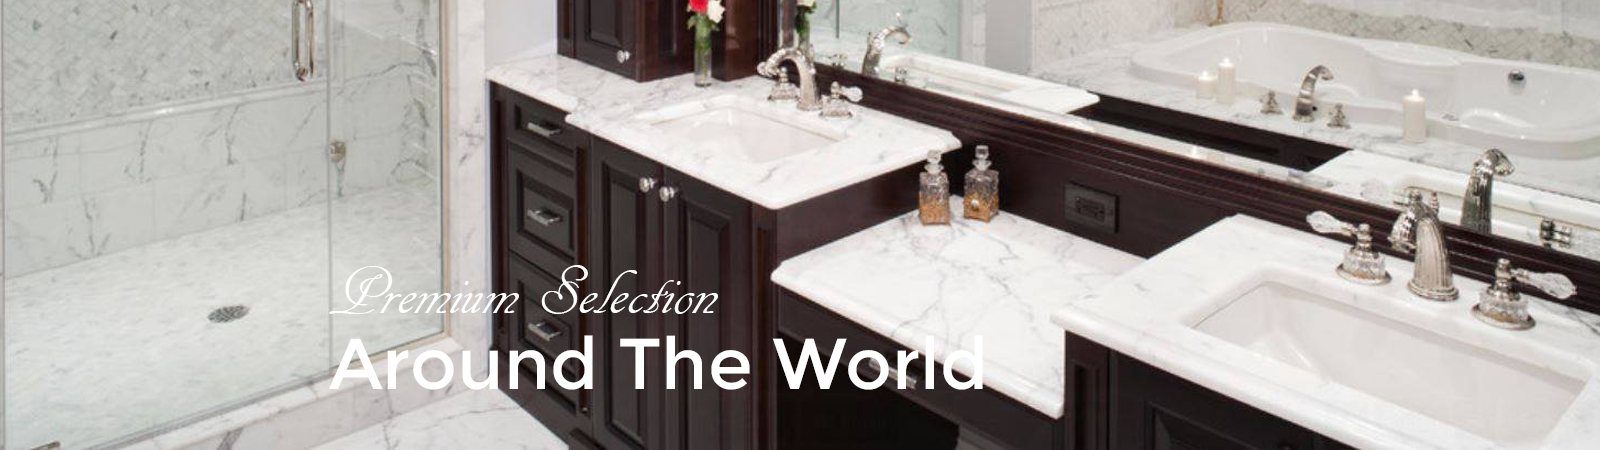 Cosmos Granite and Marble - Leading Supplier & Distributor